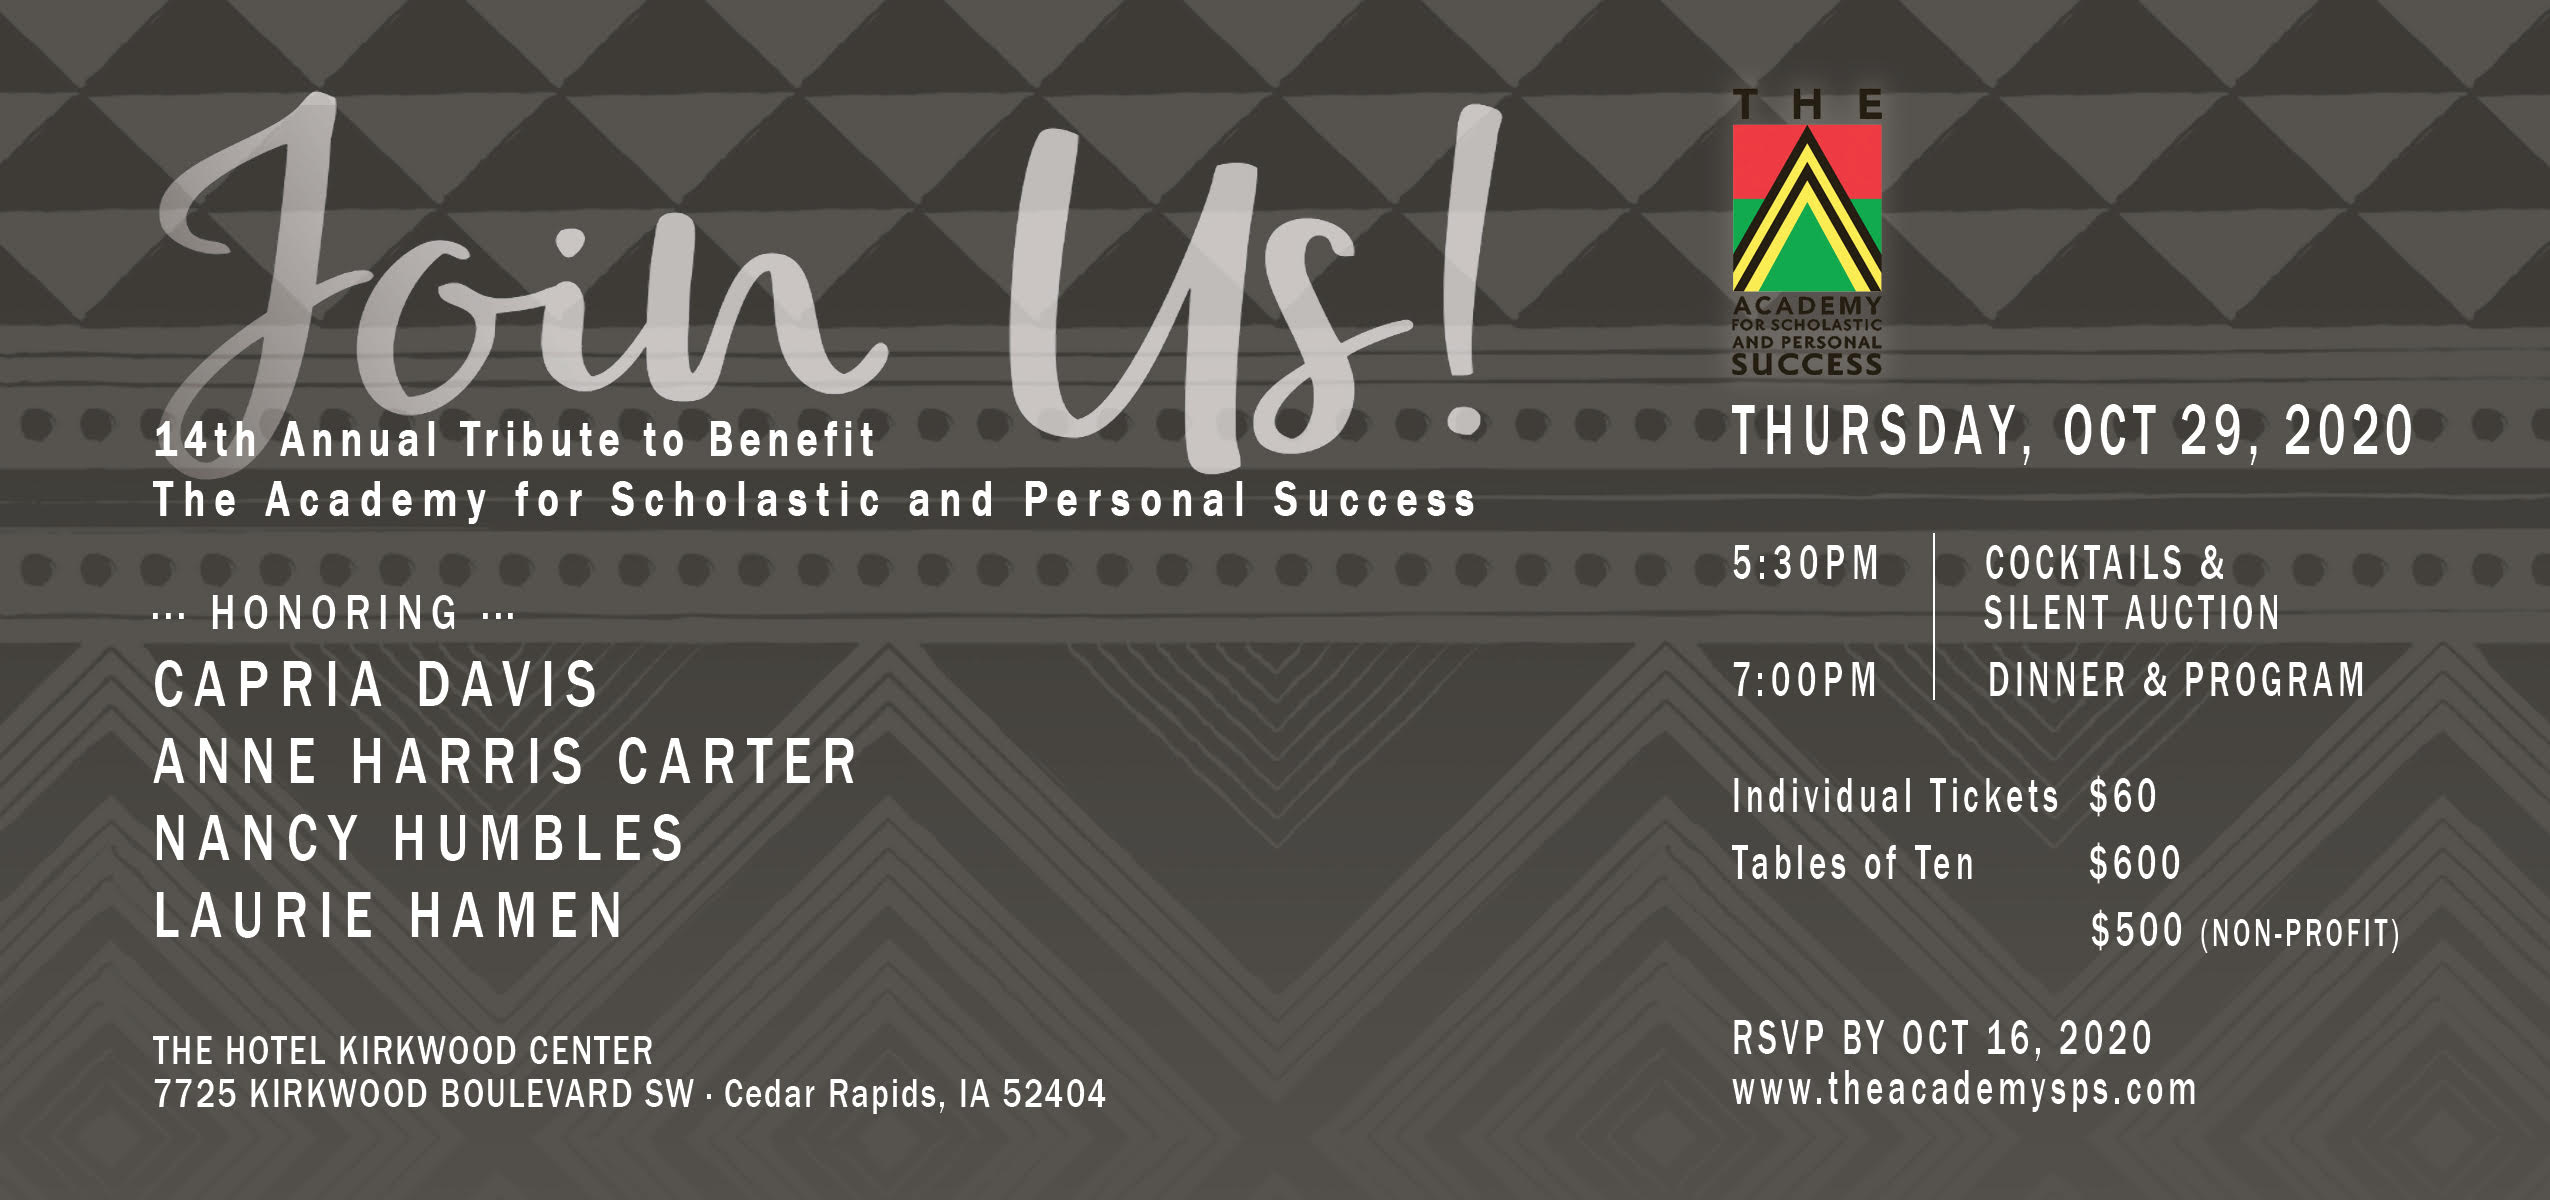 The Academy SPS 14th Annual Tribute Invitation